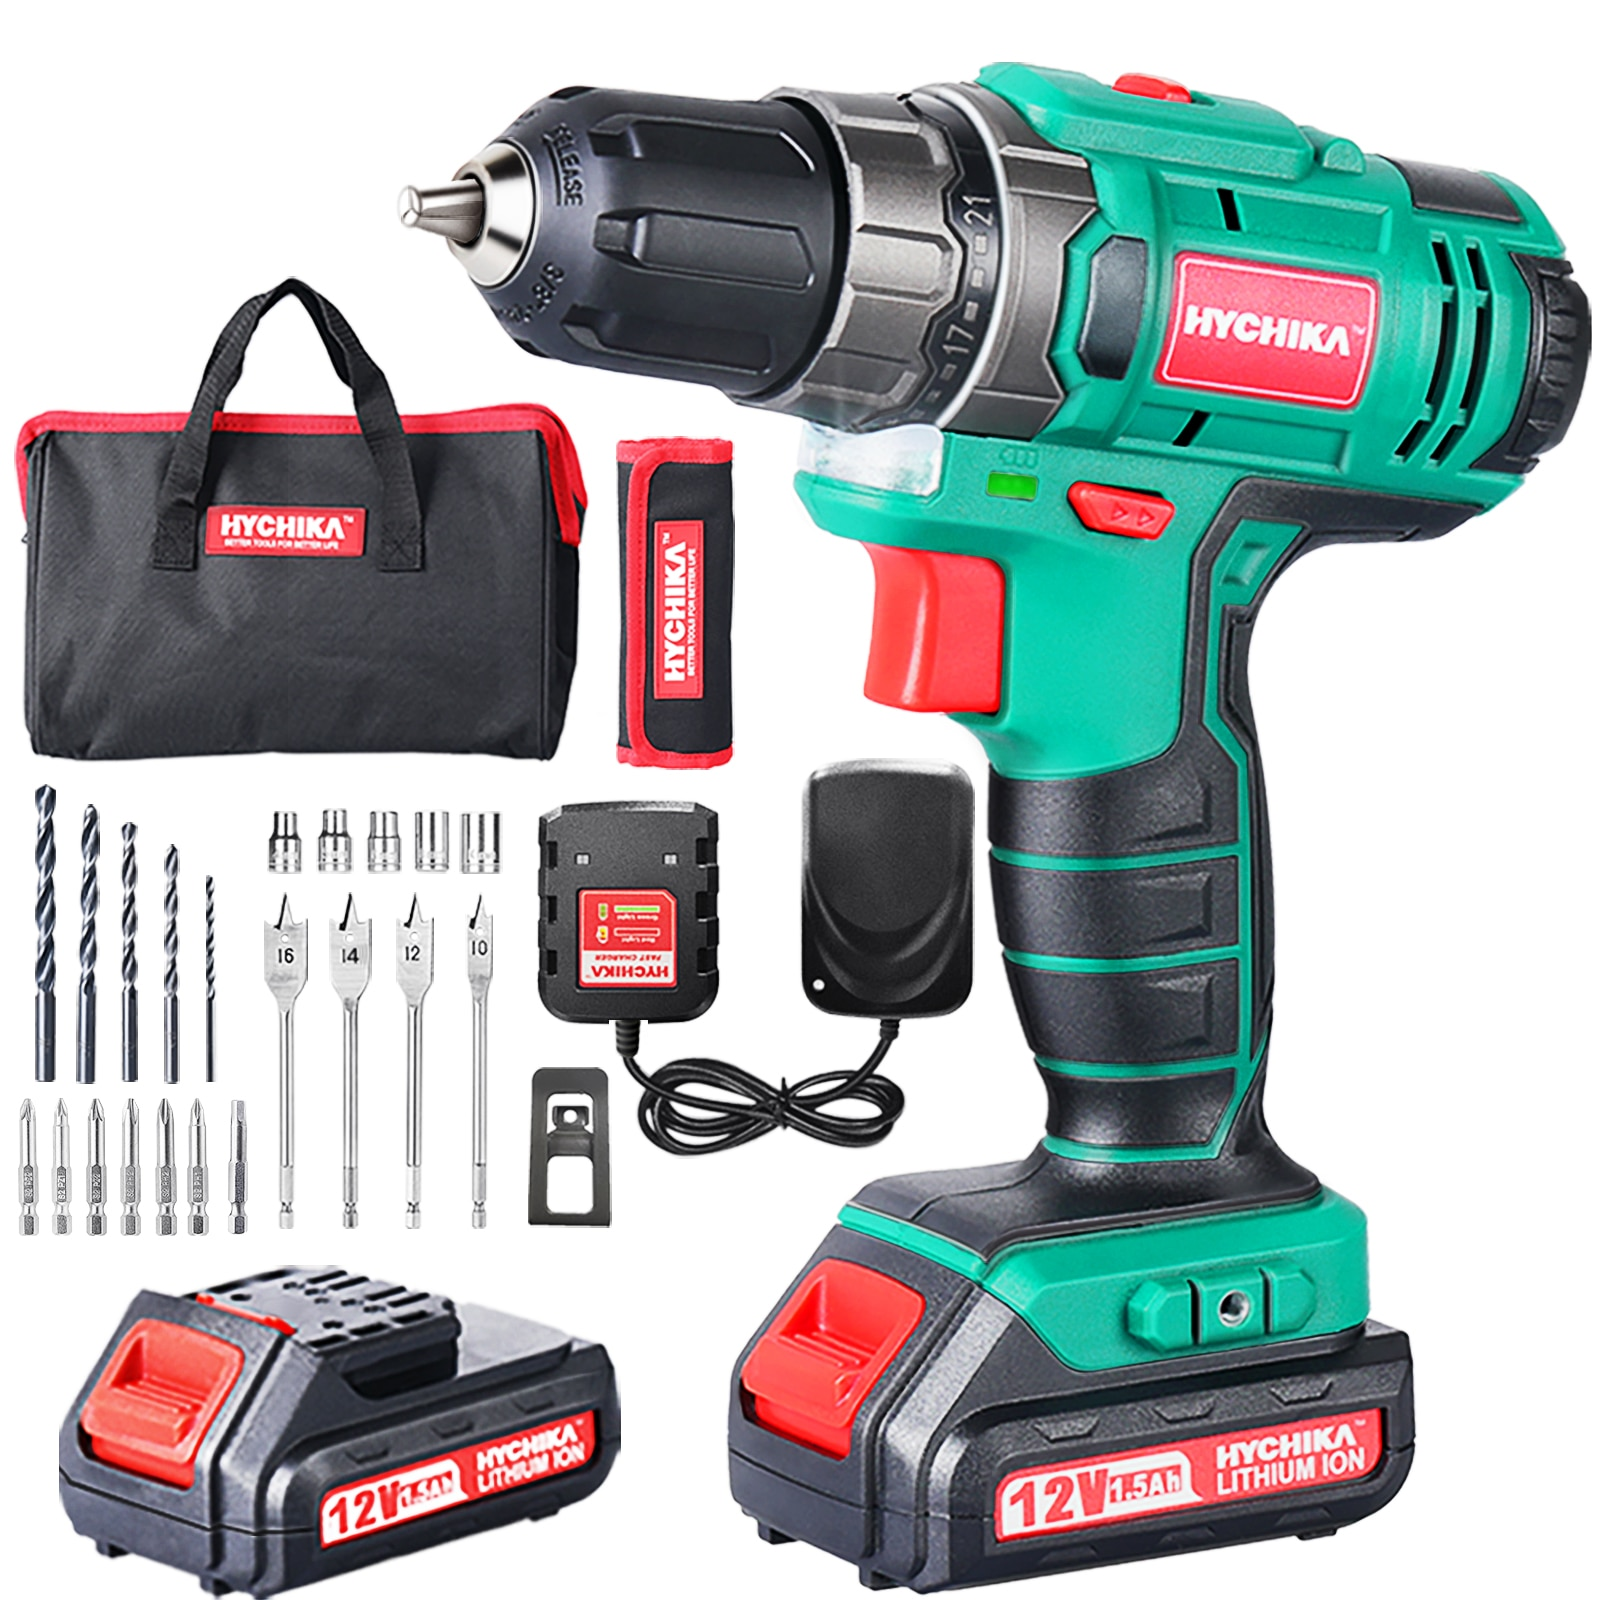 HYCHIKA 12V Double-Battery Cordless Electric Drill Screwdriver Power Driver Lithium-Ion Battery Hand